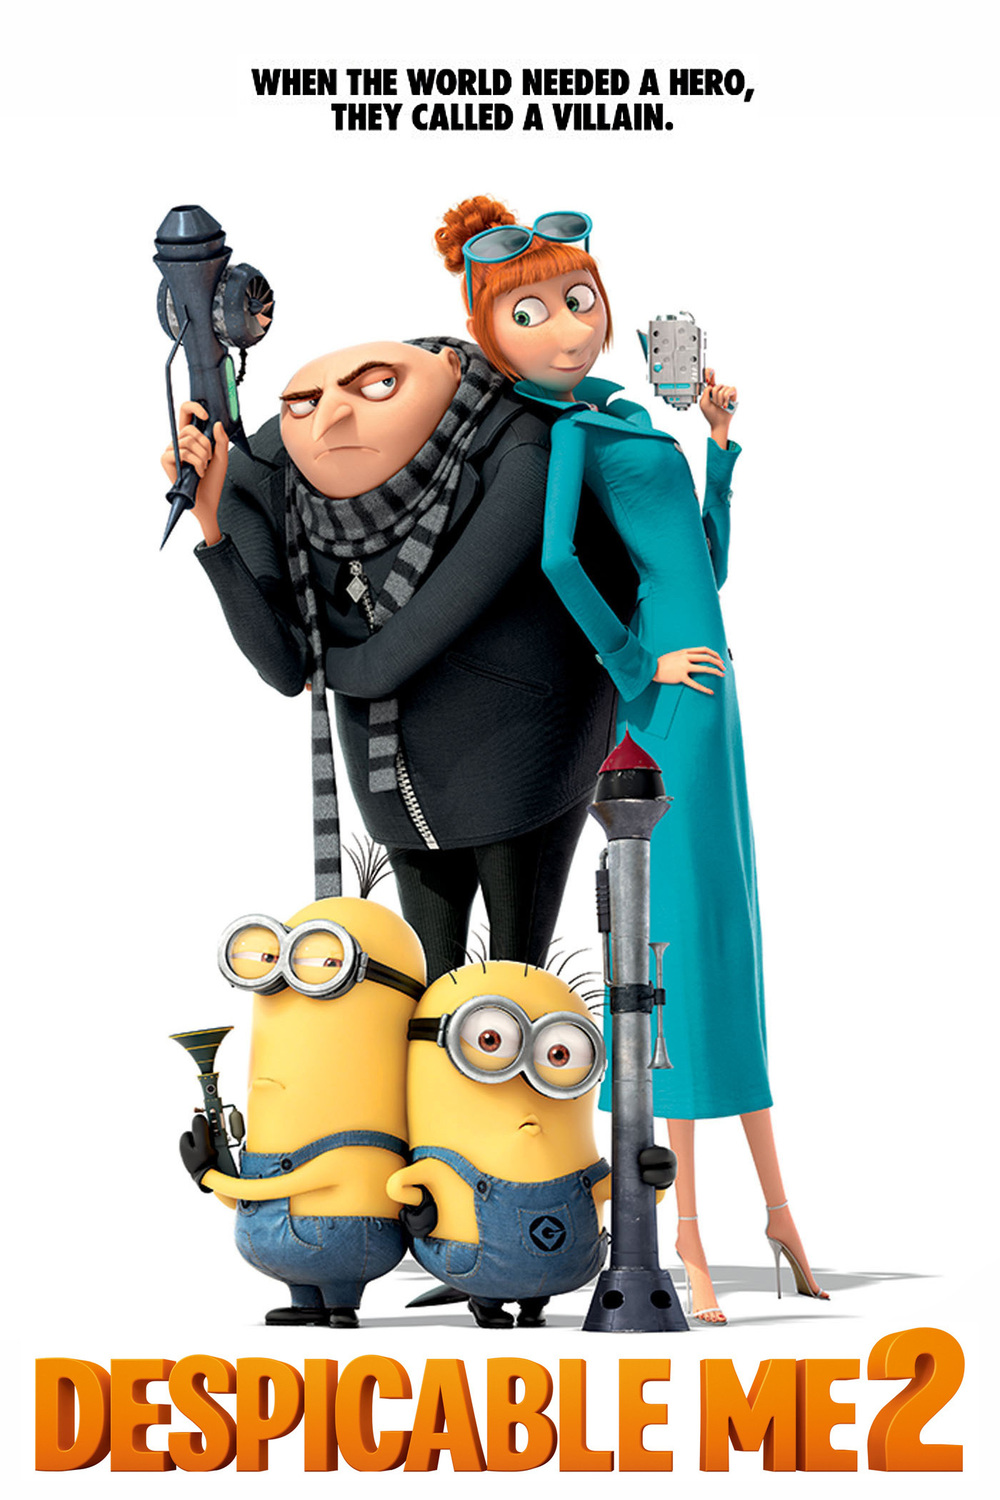 Despicable me 2 release date in Perth